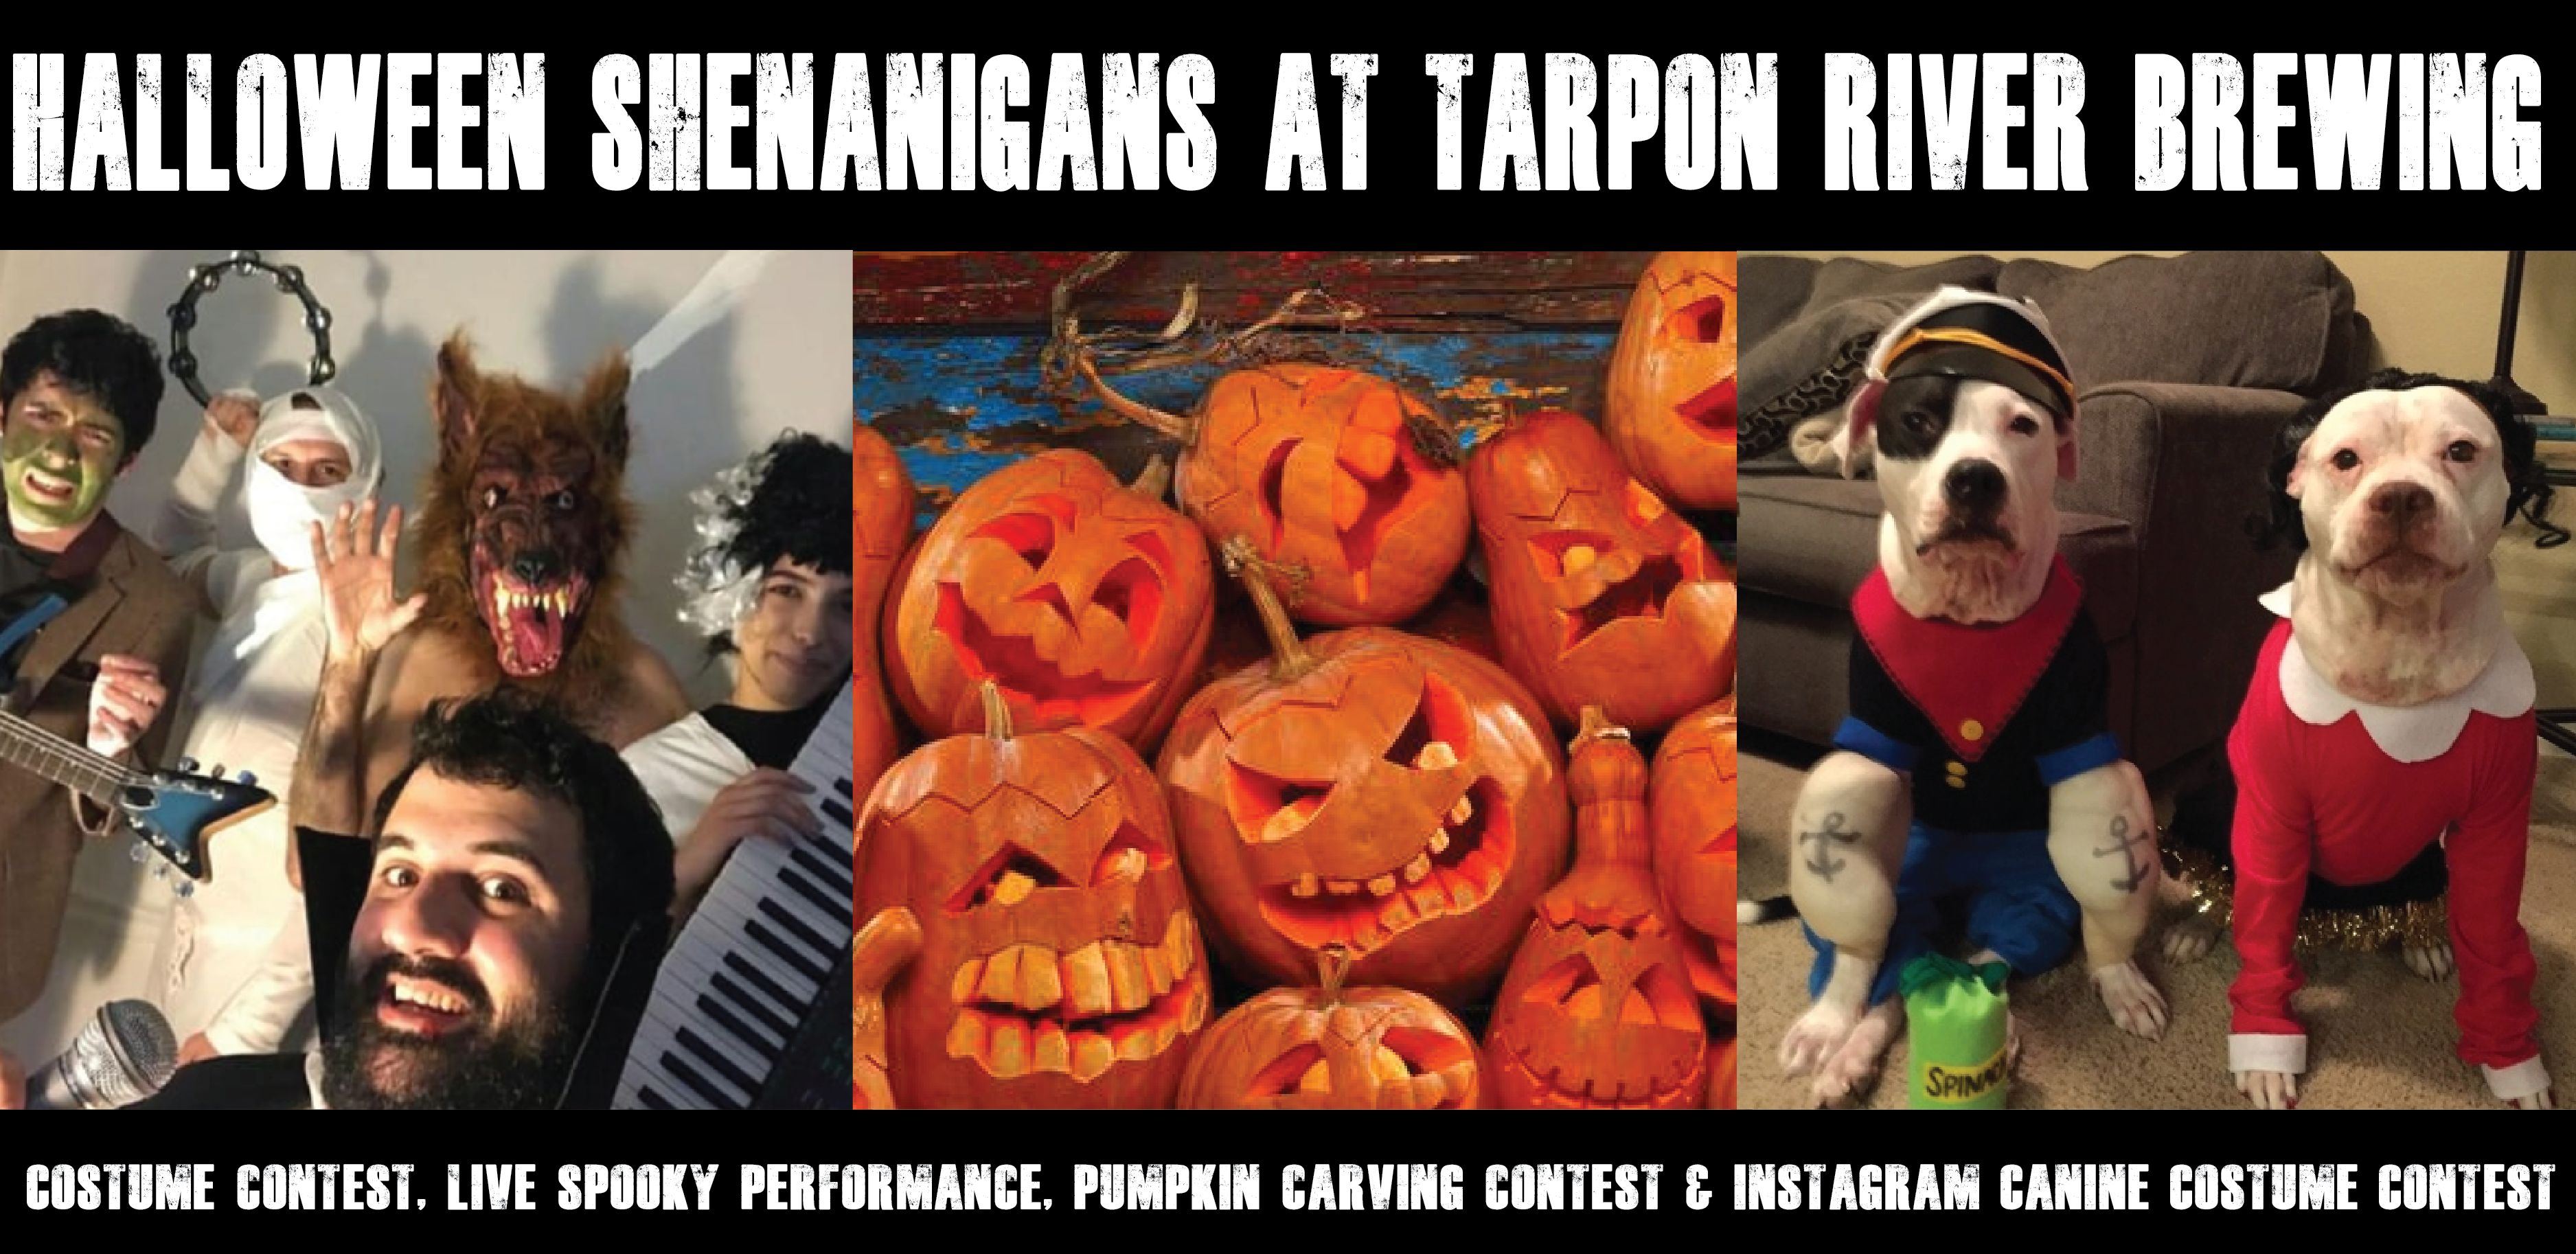 Halloween at Tarpon River Brewing